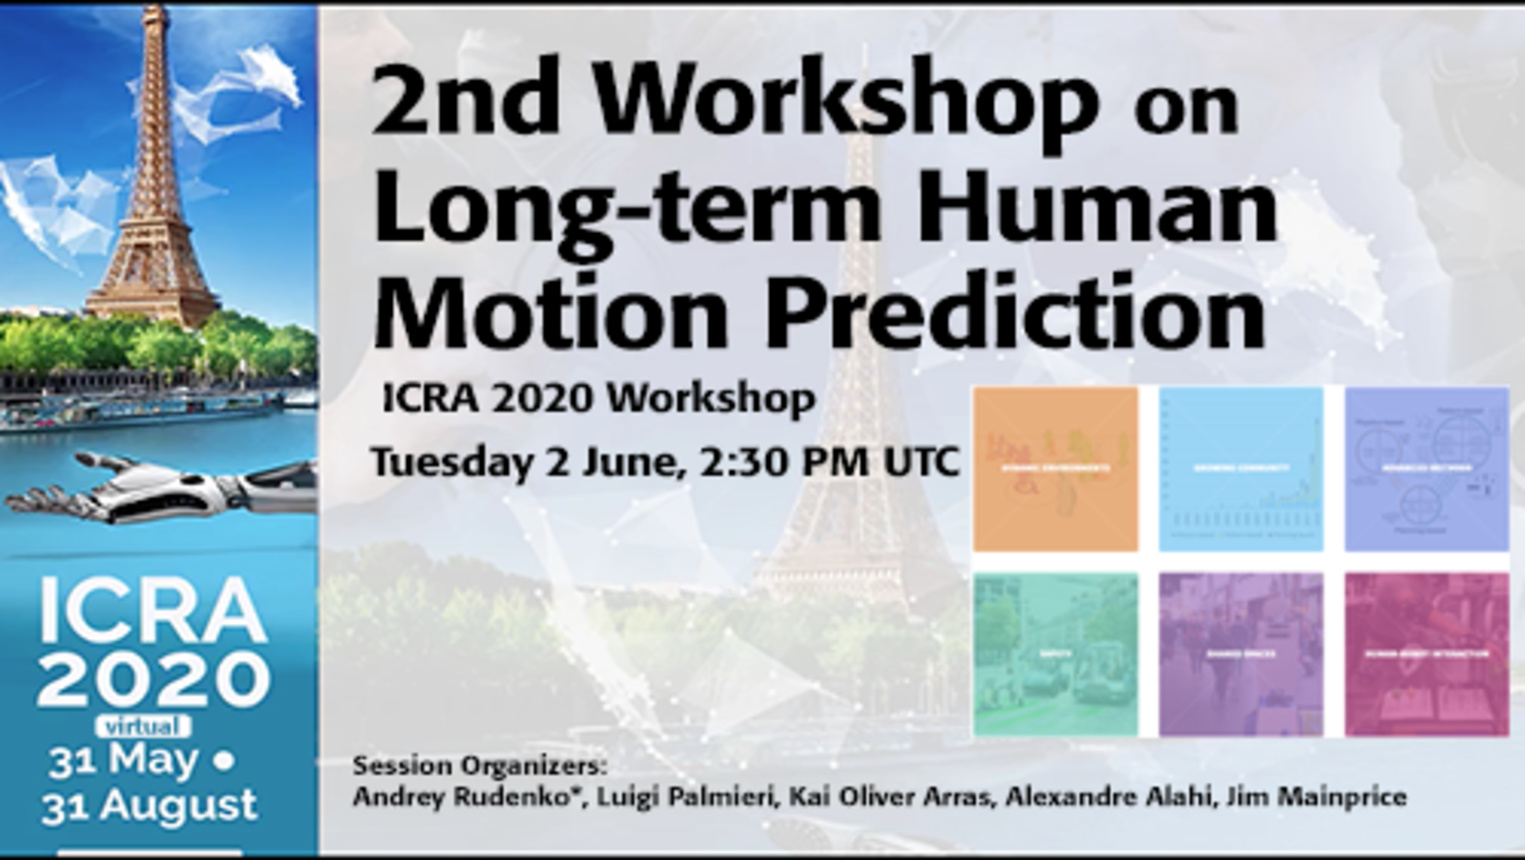 2nd Workshop on Long-Term Human Motion Prediction - ICRA 2020